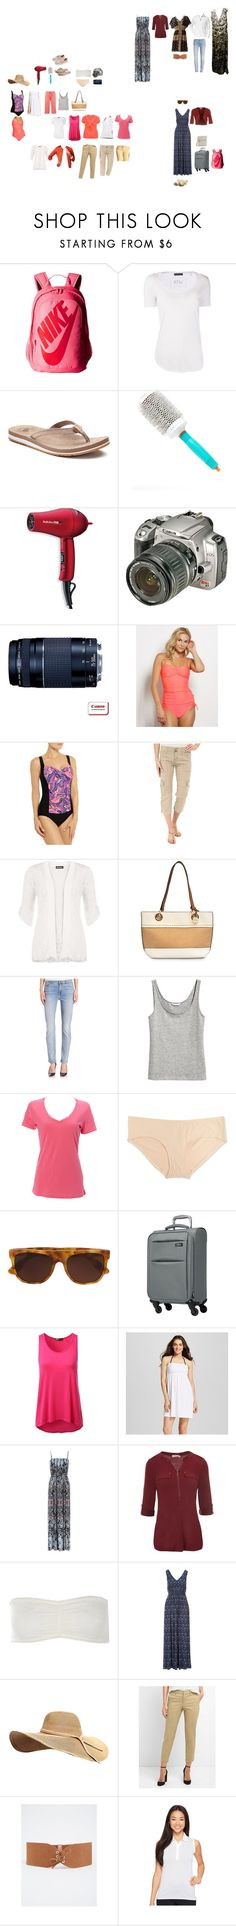 """""""Vegas September 2017 packing list"""" by donovan-heather on Polyvore featuring NIKE, ATM by Anthony Thomas Melillo, New Balance, Moroccanoil, BaByliss Pro, Sanctuary, WearAll, Nicole Miller, Jen7 and Simplex Apparel"""